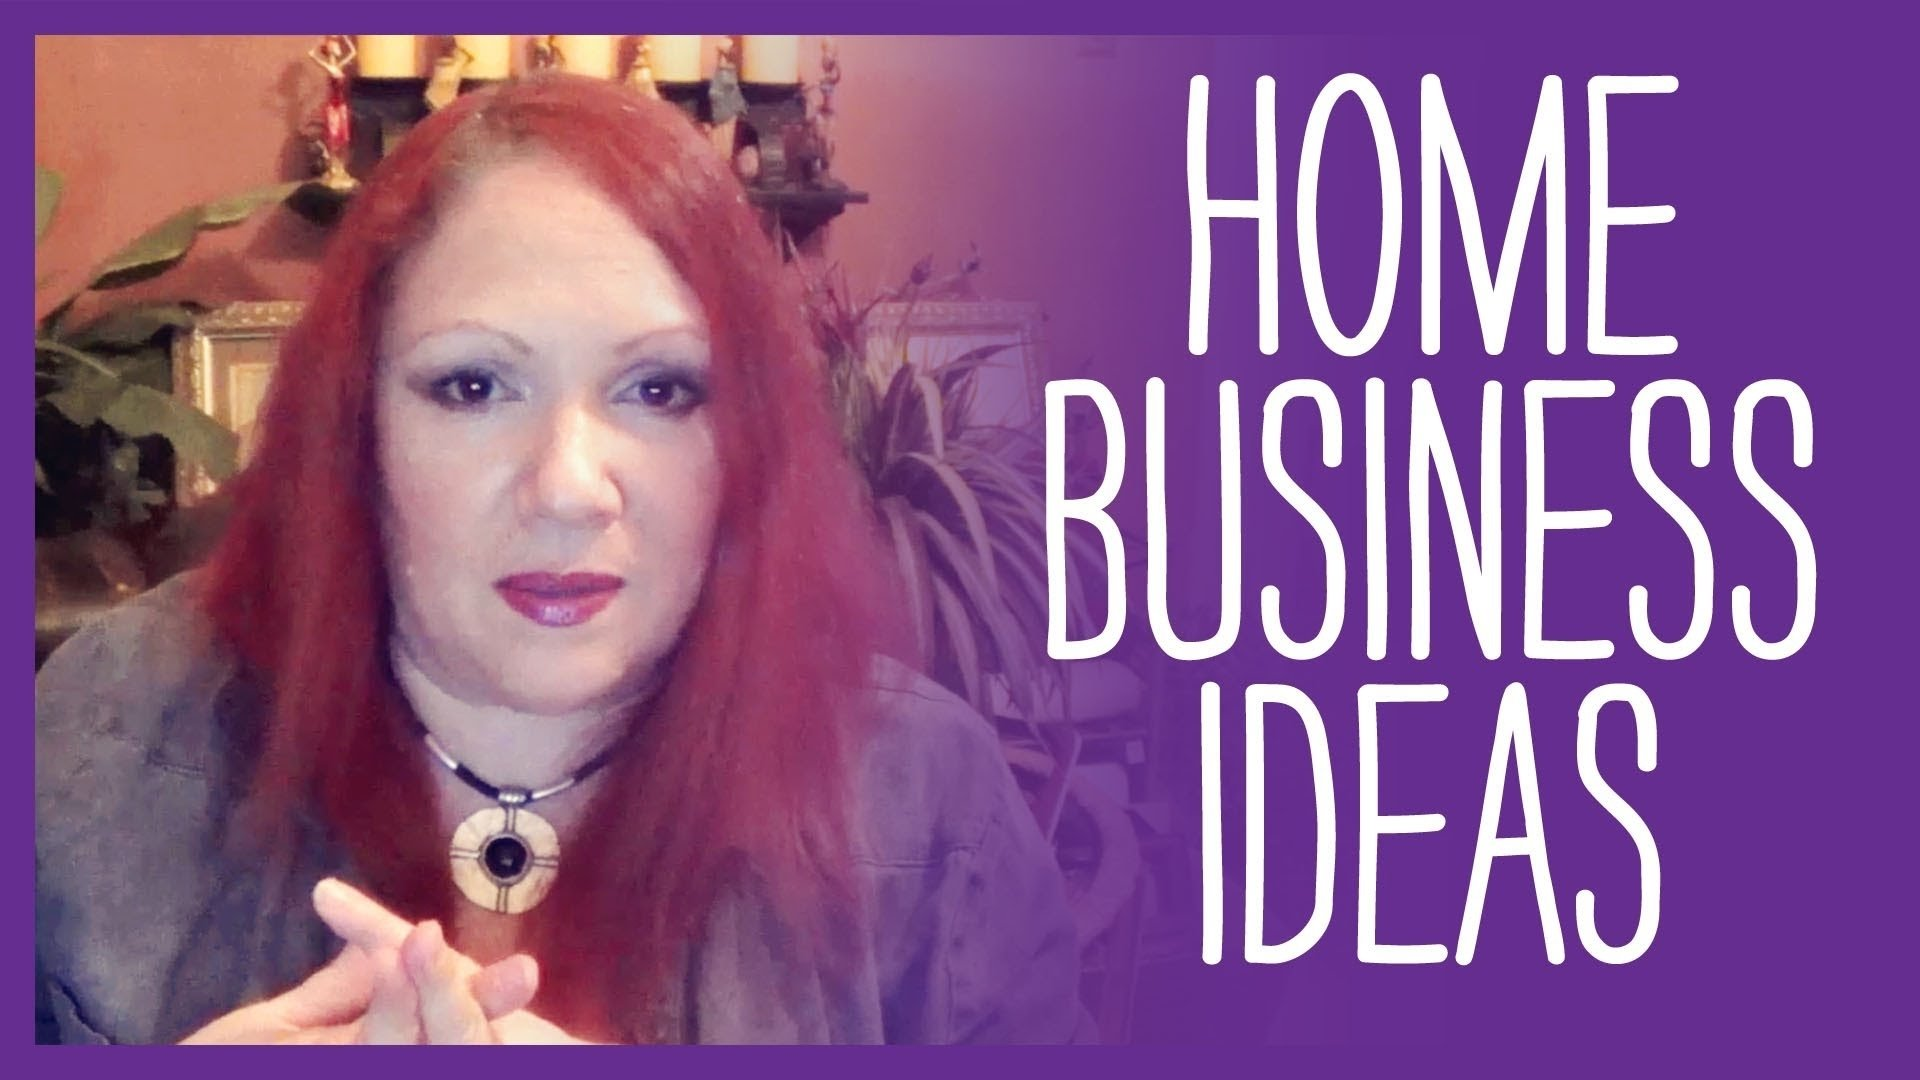 10 Beautiful Stay At Home Mom Business Ideas seven inspiring home business ideas for stay at home moms youtube 2 2021